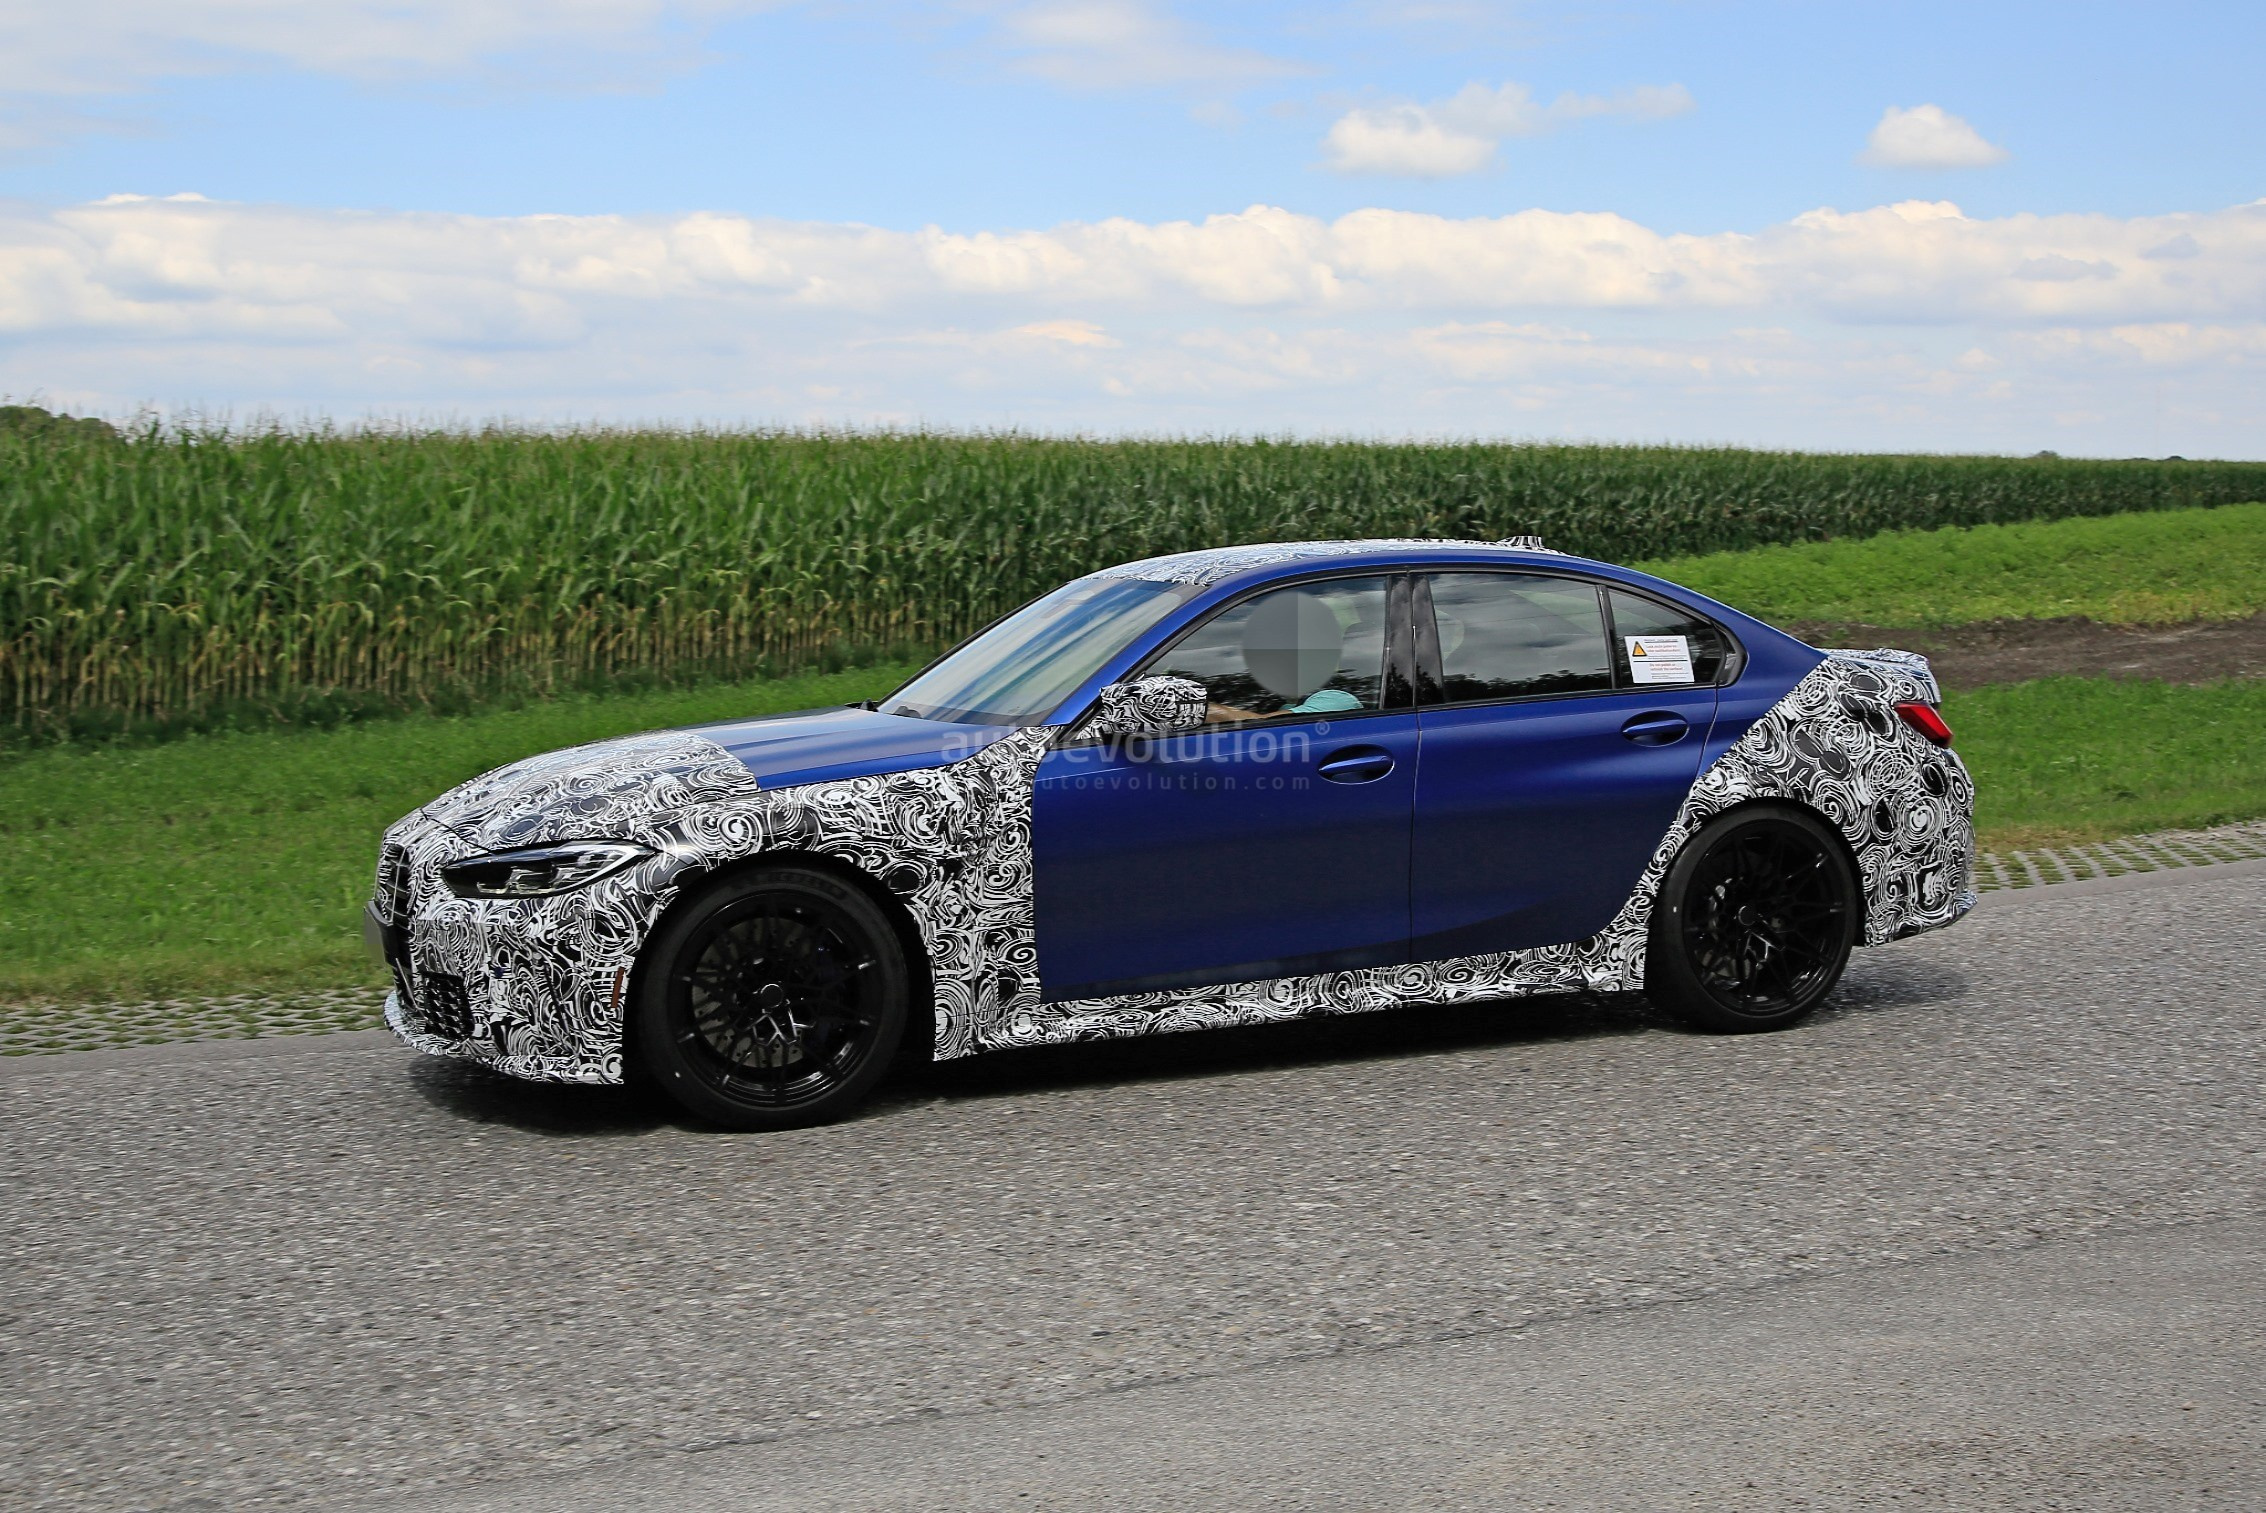 g80-bmw-m3-shows-ginormous-kidney-grille-in-new-spy-phots_4